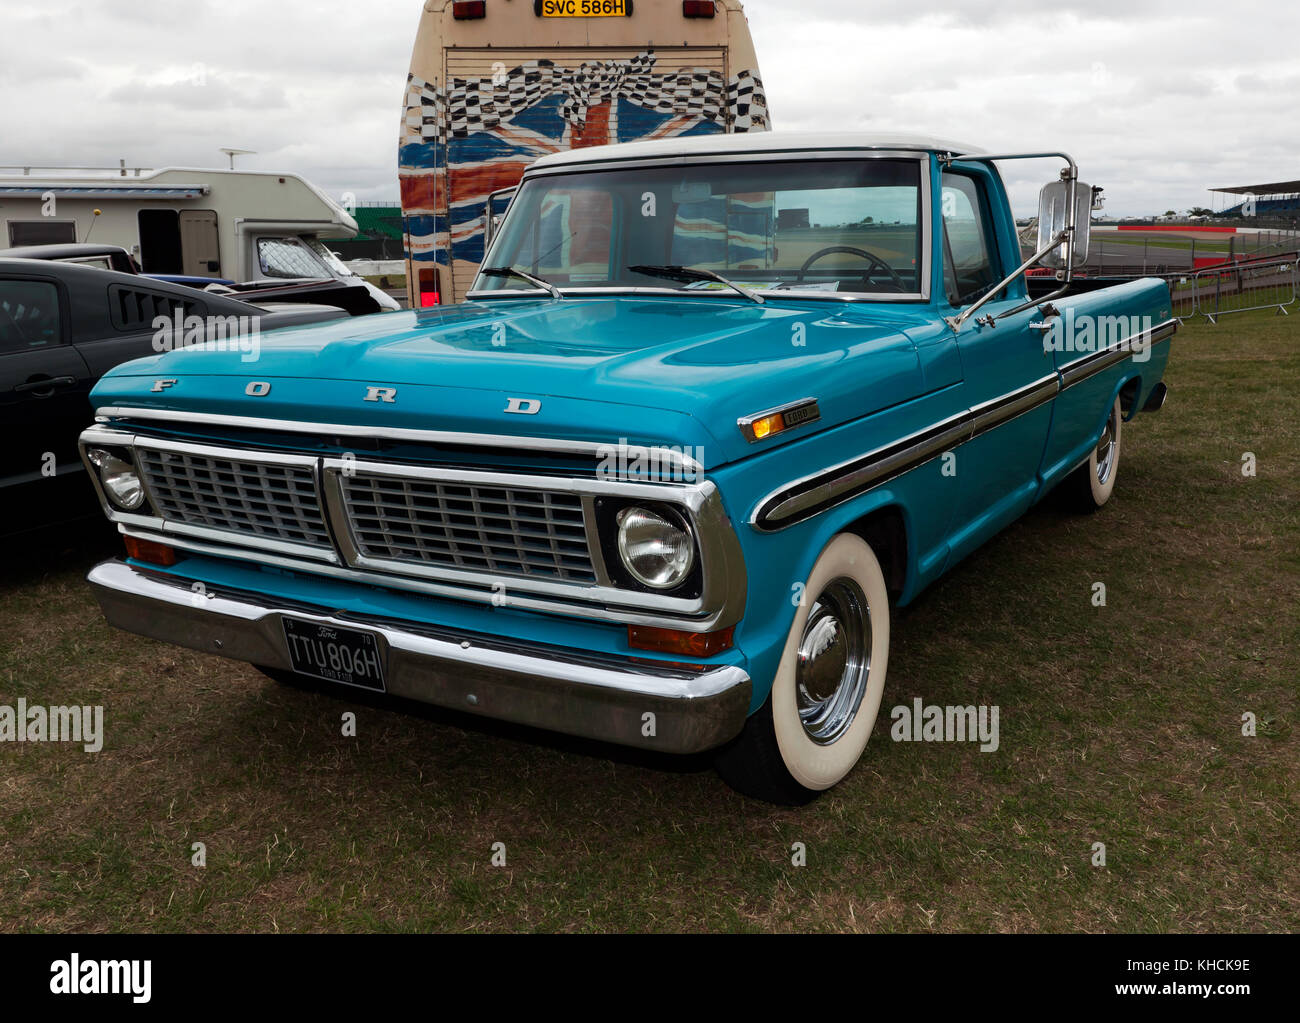 1970 Ford F100 >> Three Quarter Front View Of A 1970 Ford F100 Pick Up Truck